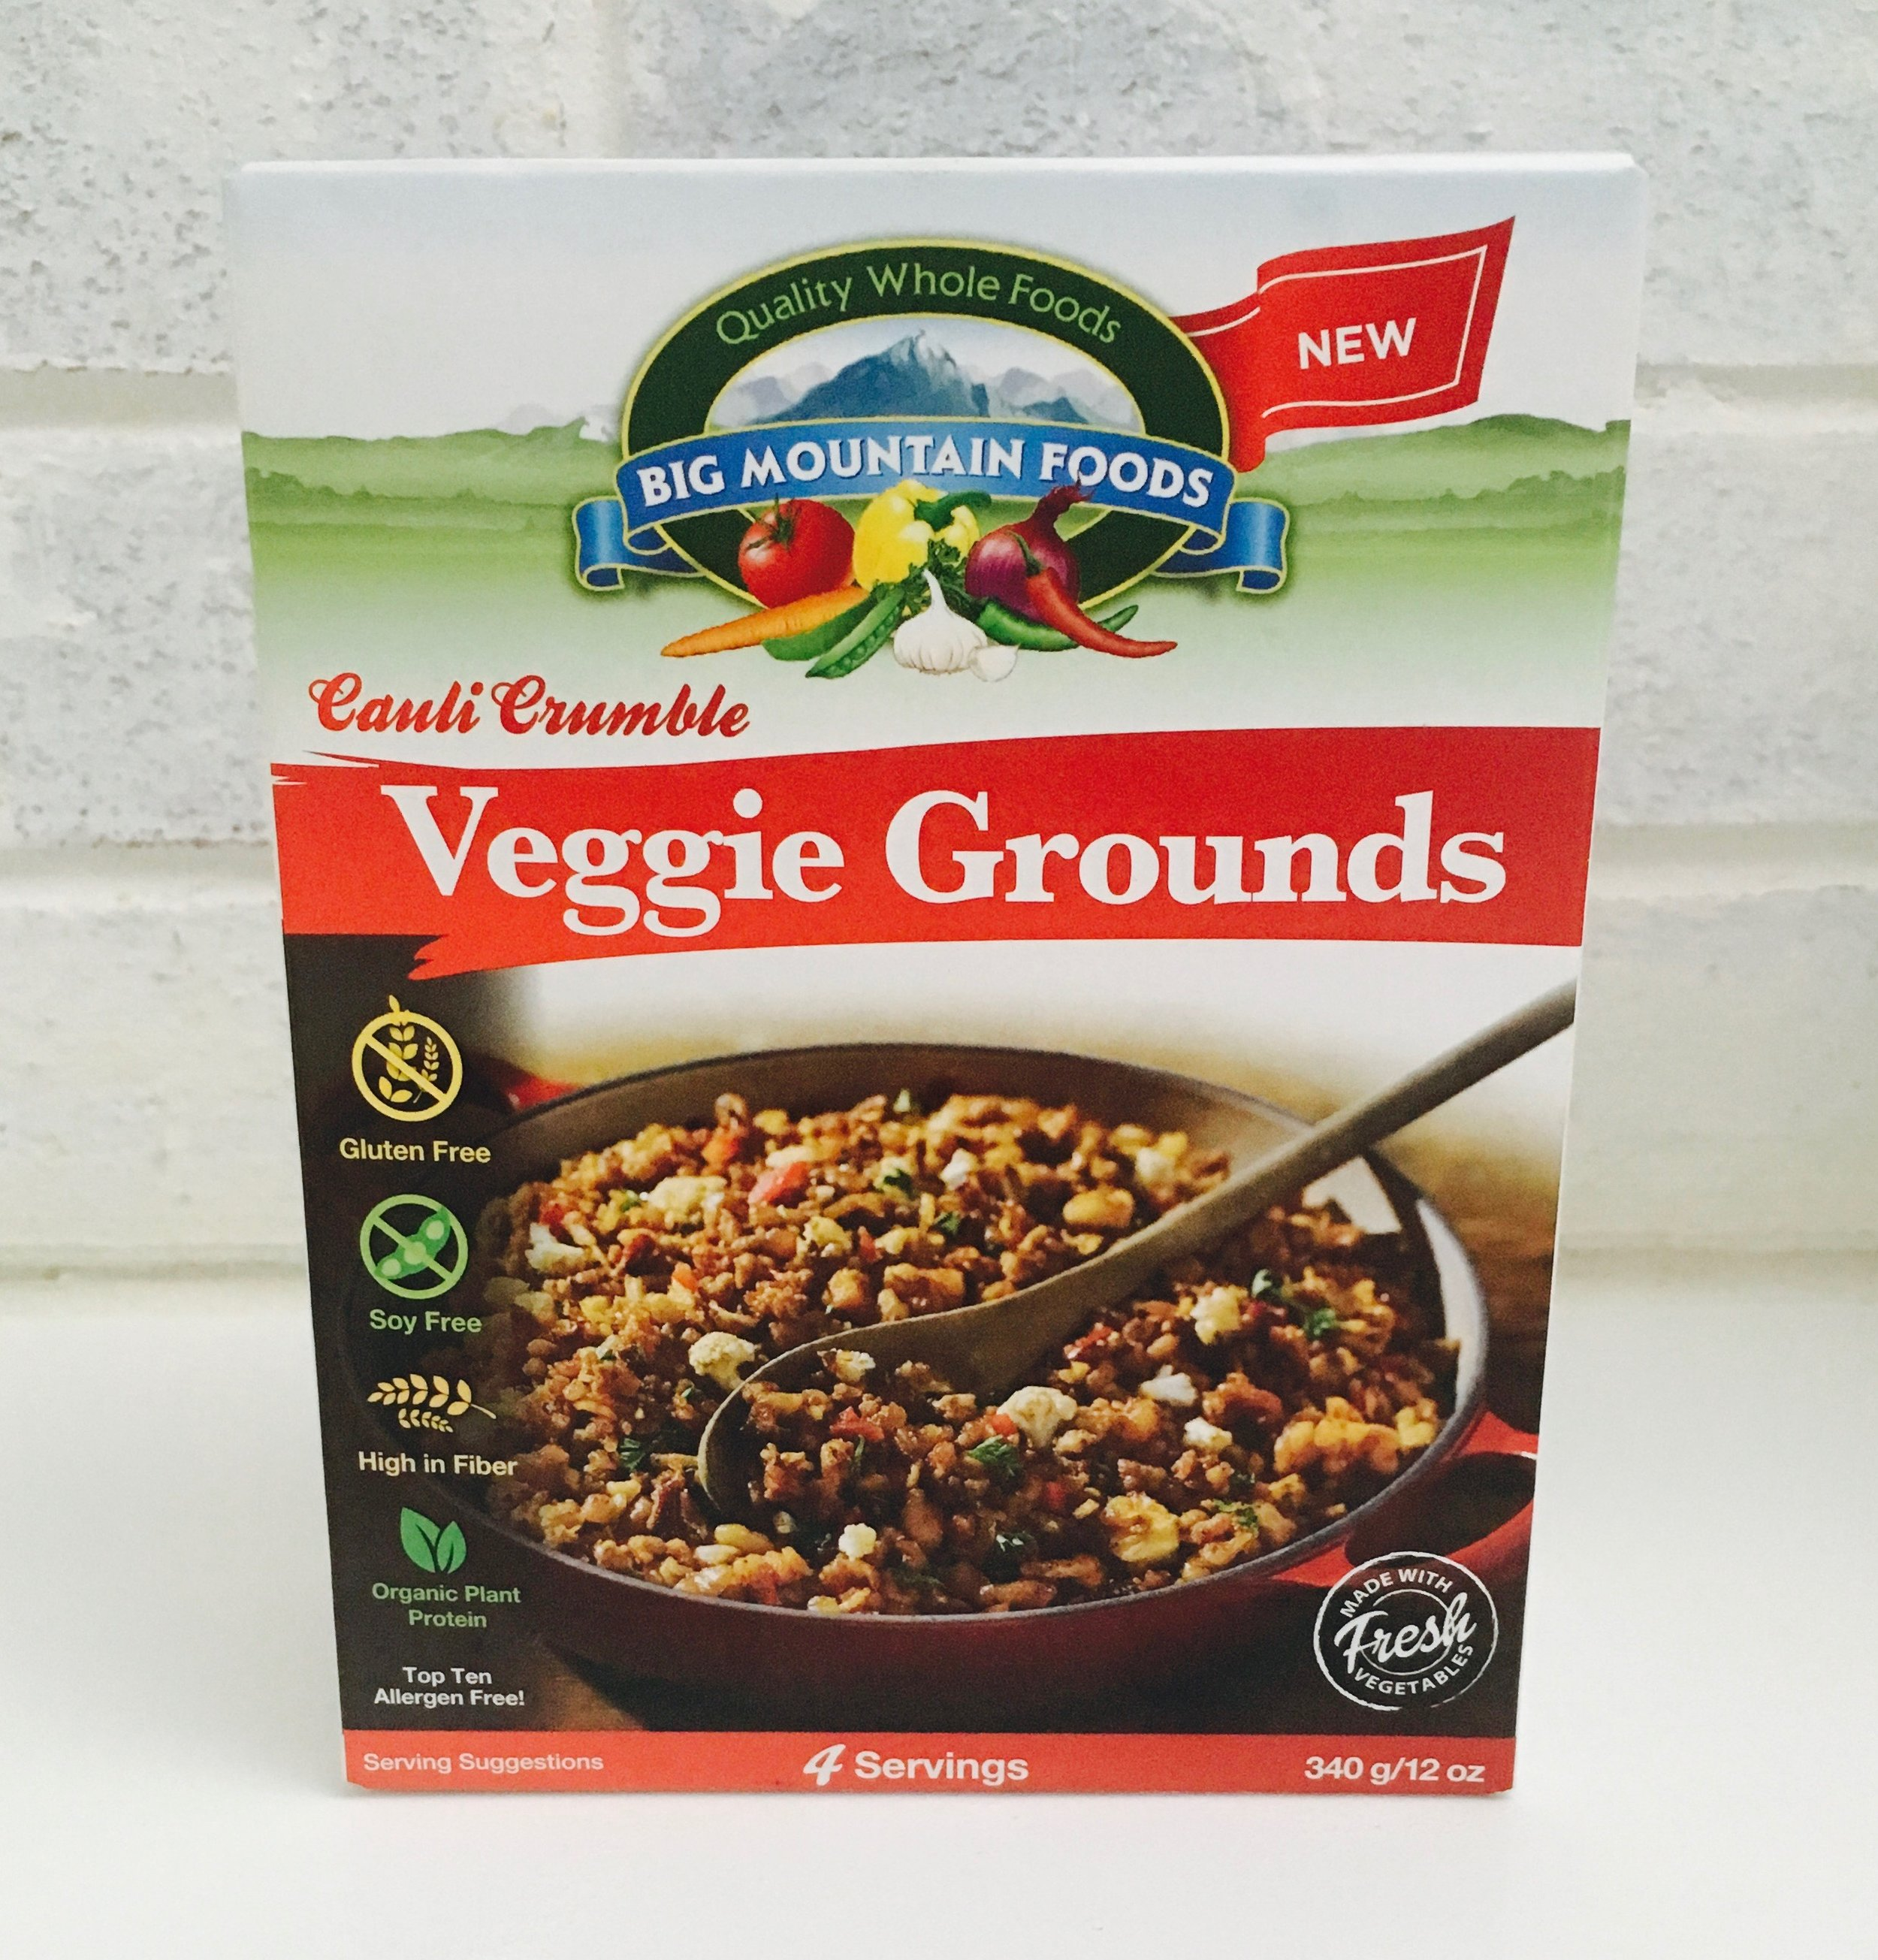 Available at many major grocery stores  www.BigMountainFoods.com